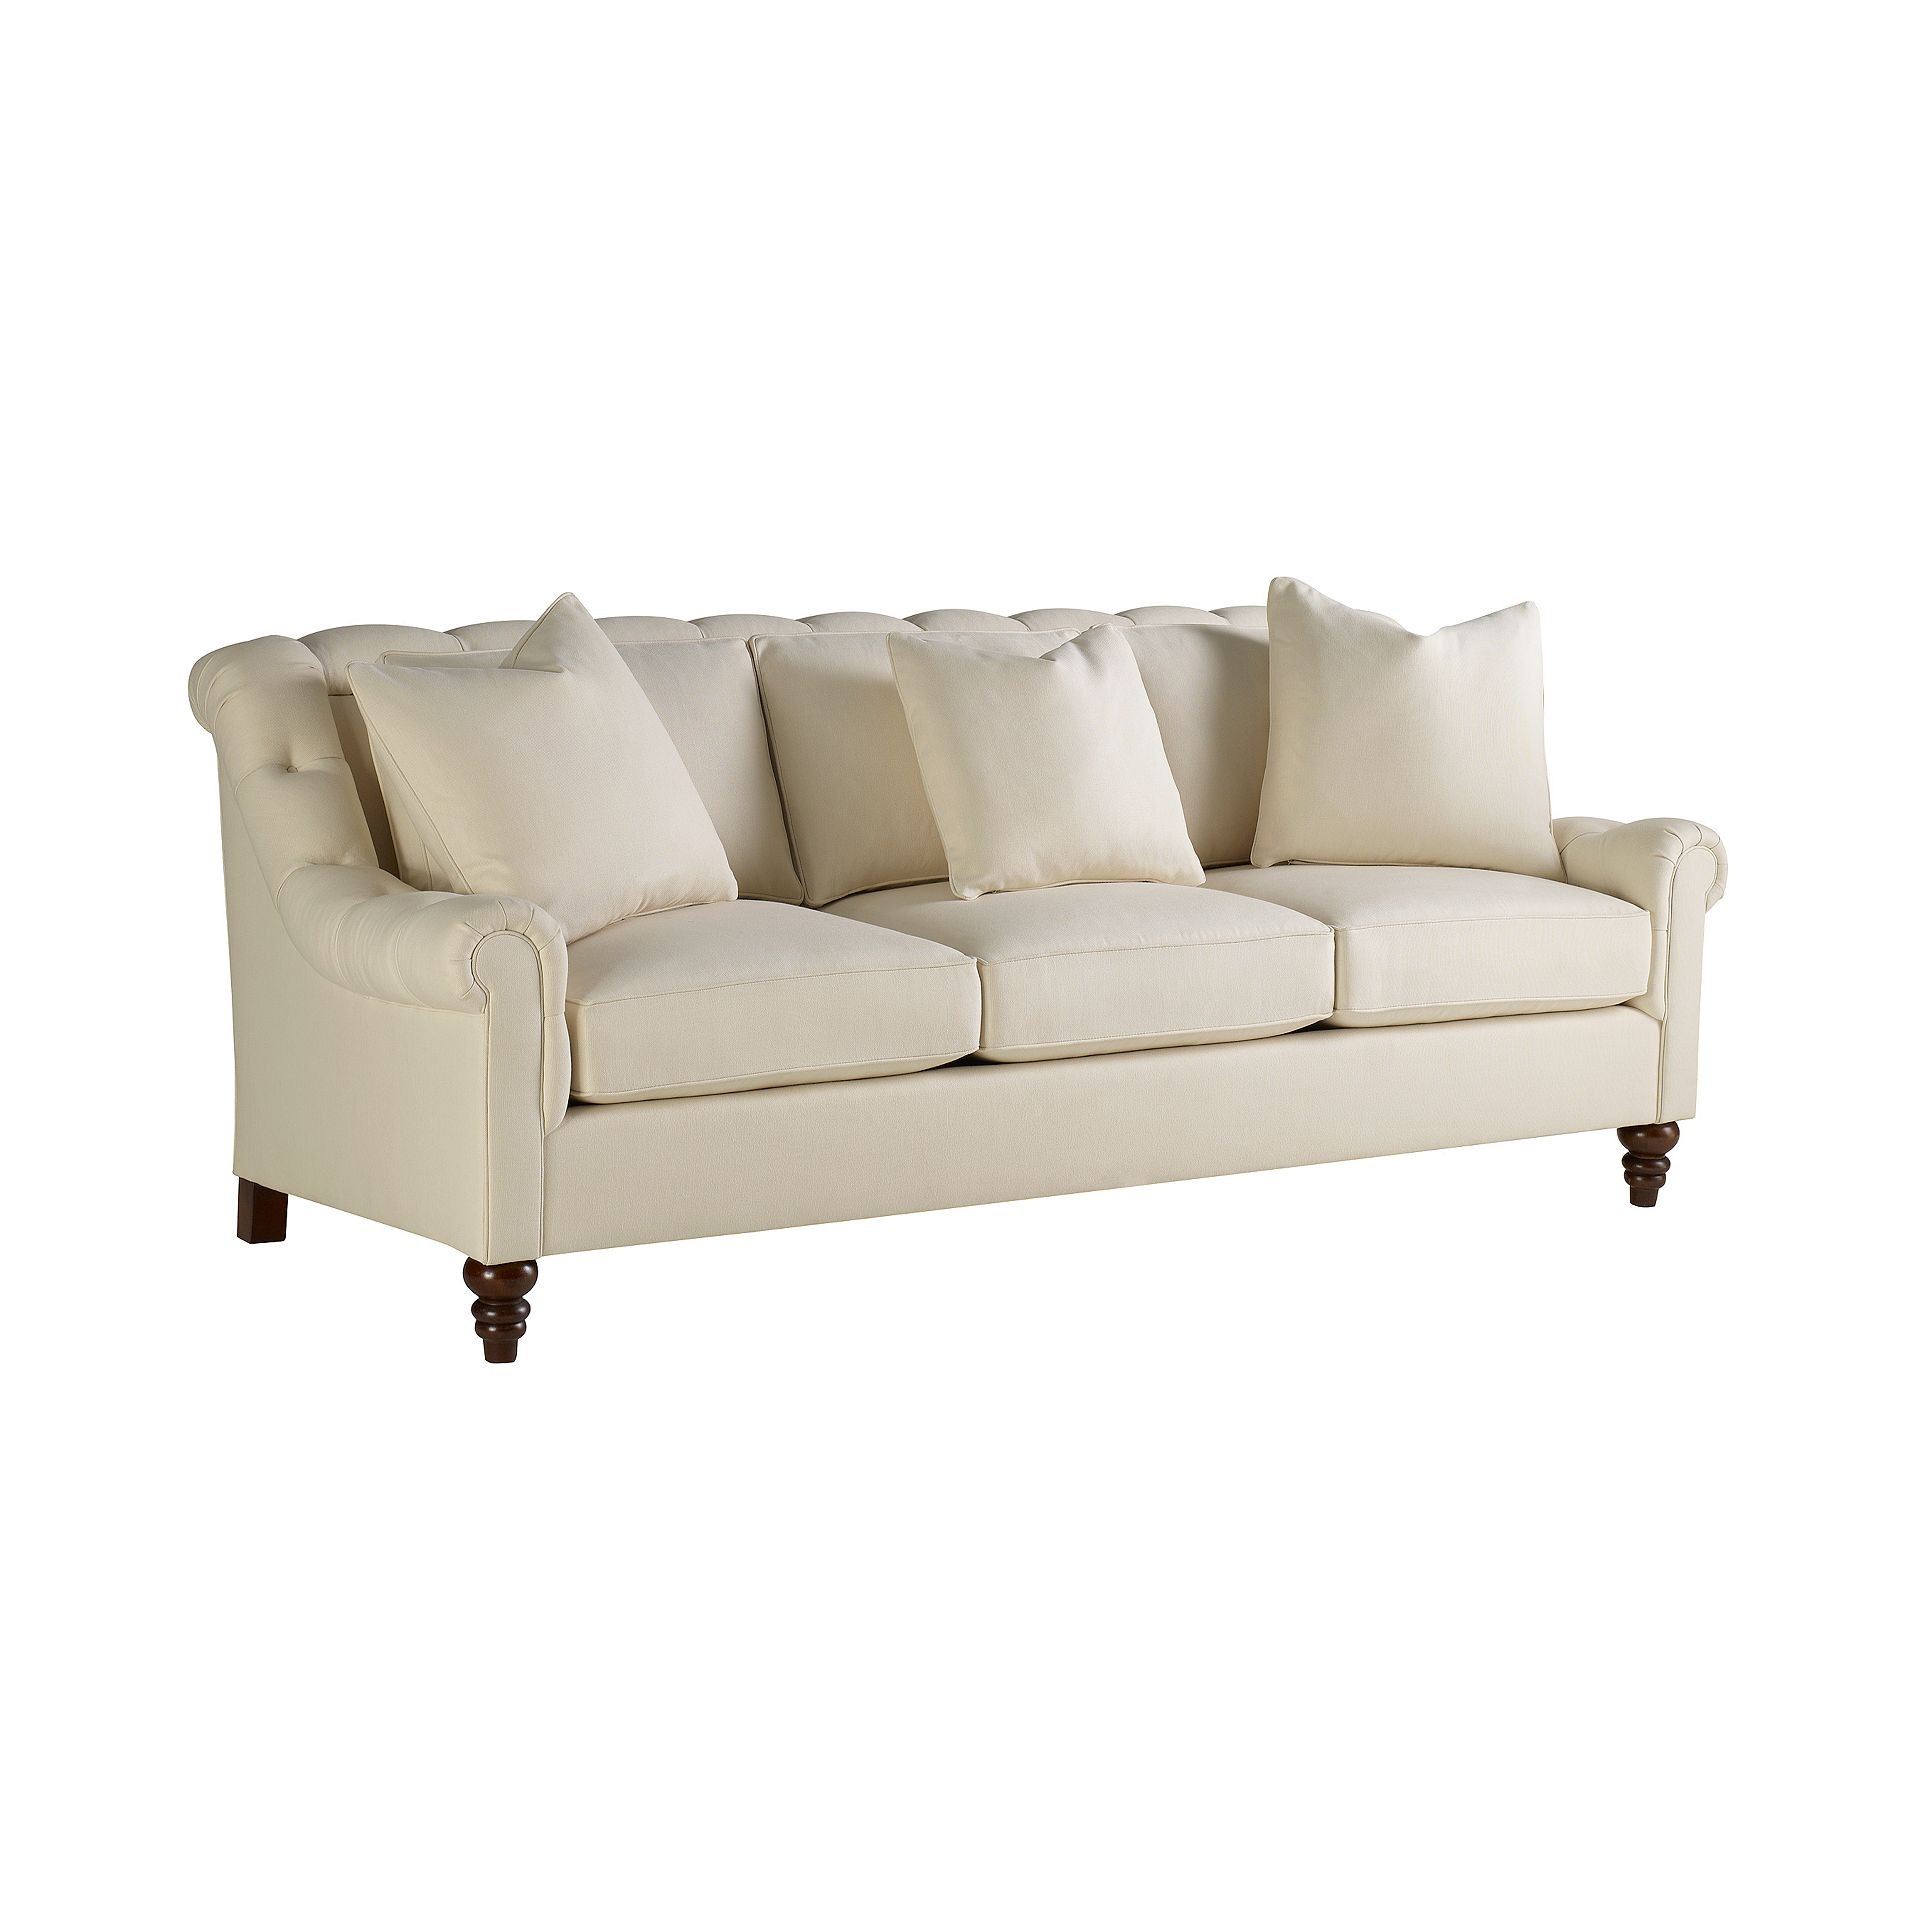 Henredon Furniture Celerie Kemble For Henredon Billy Sofa H1308 C